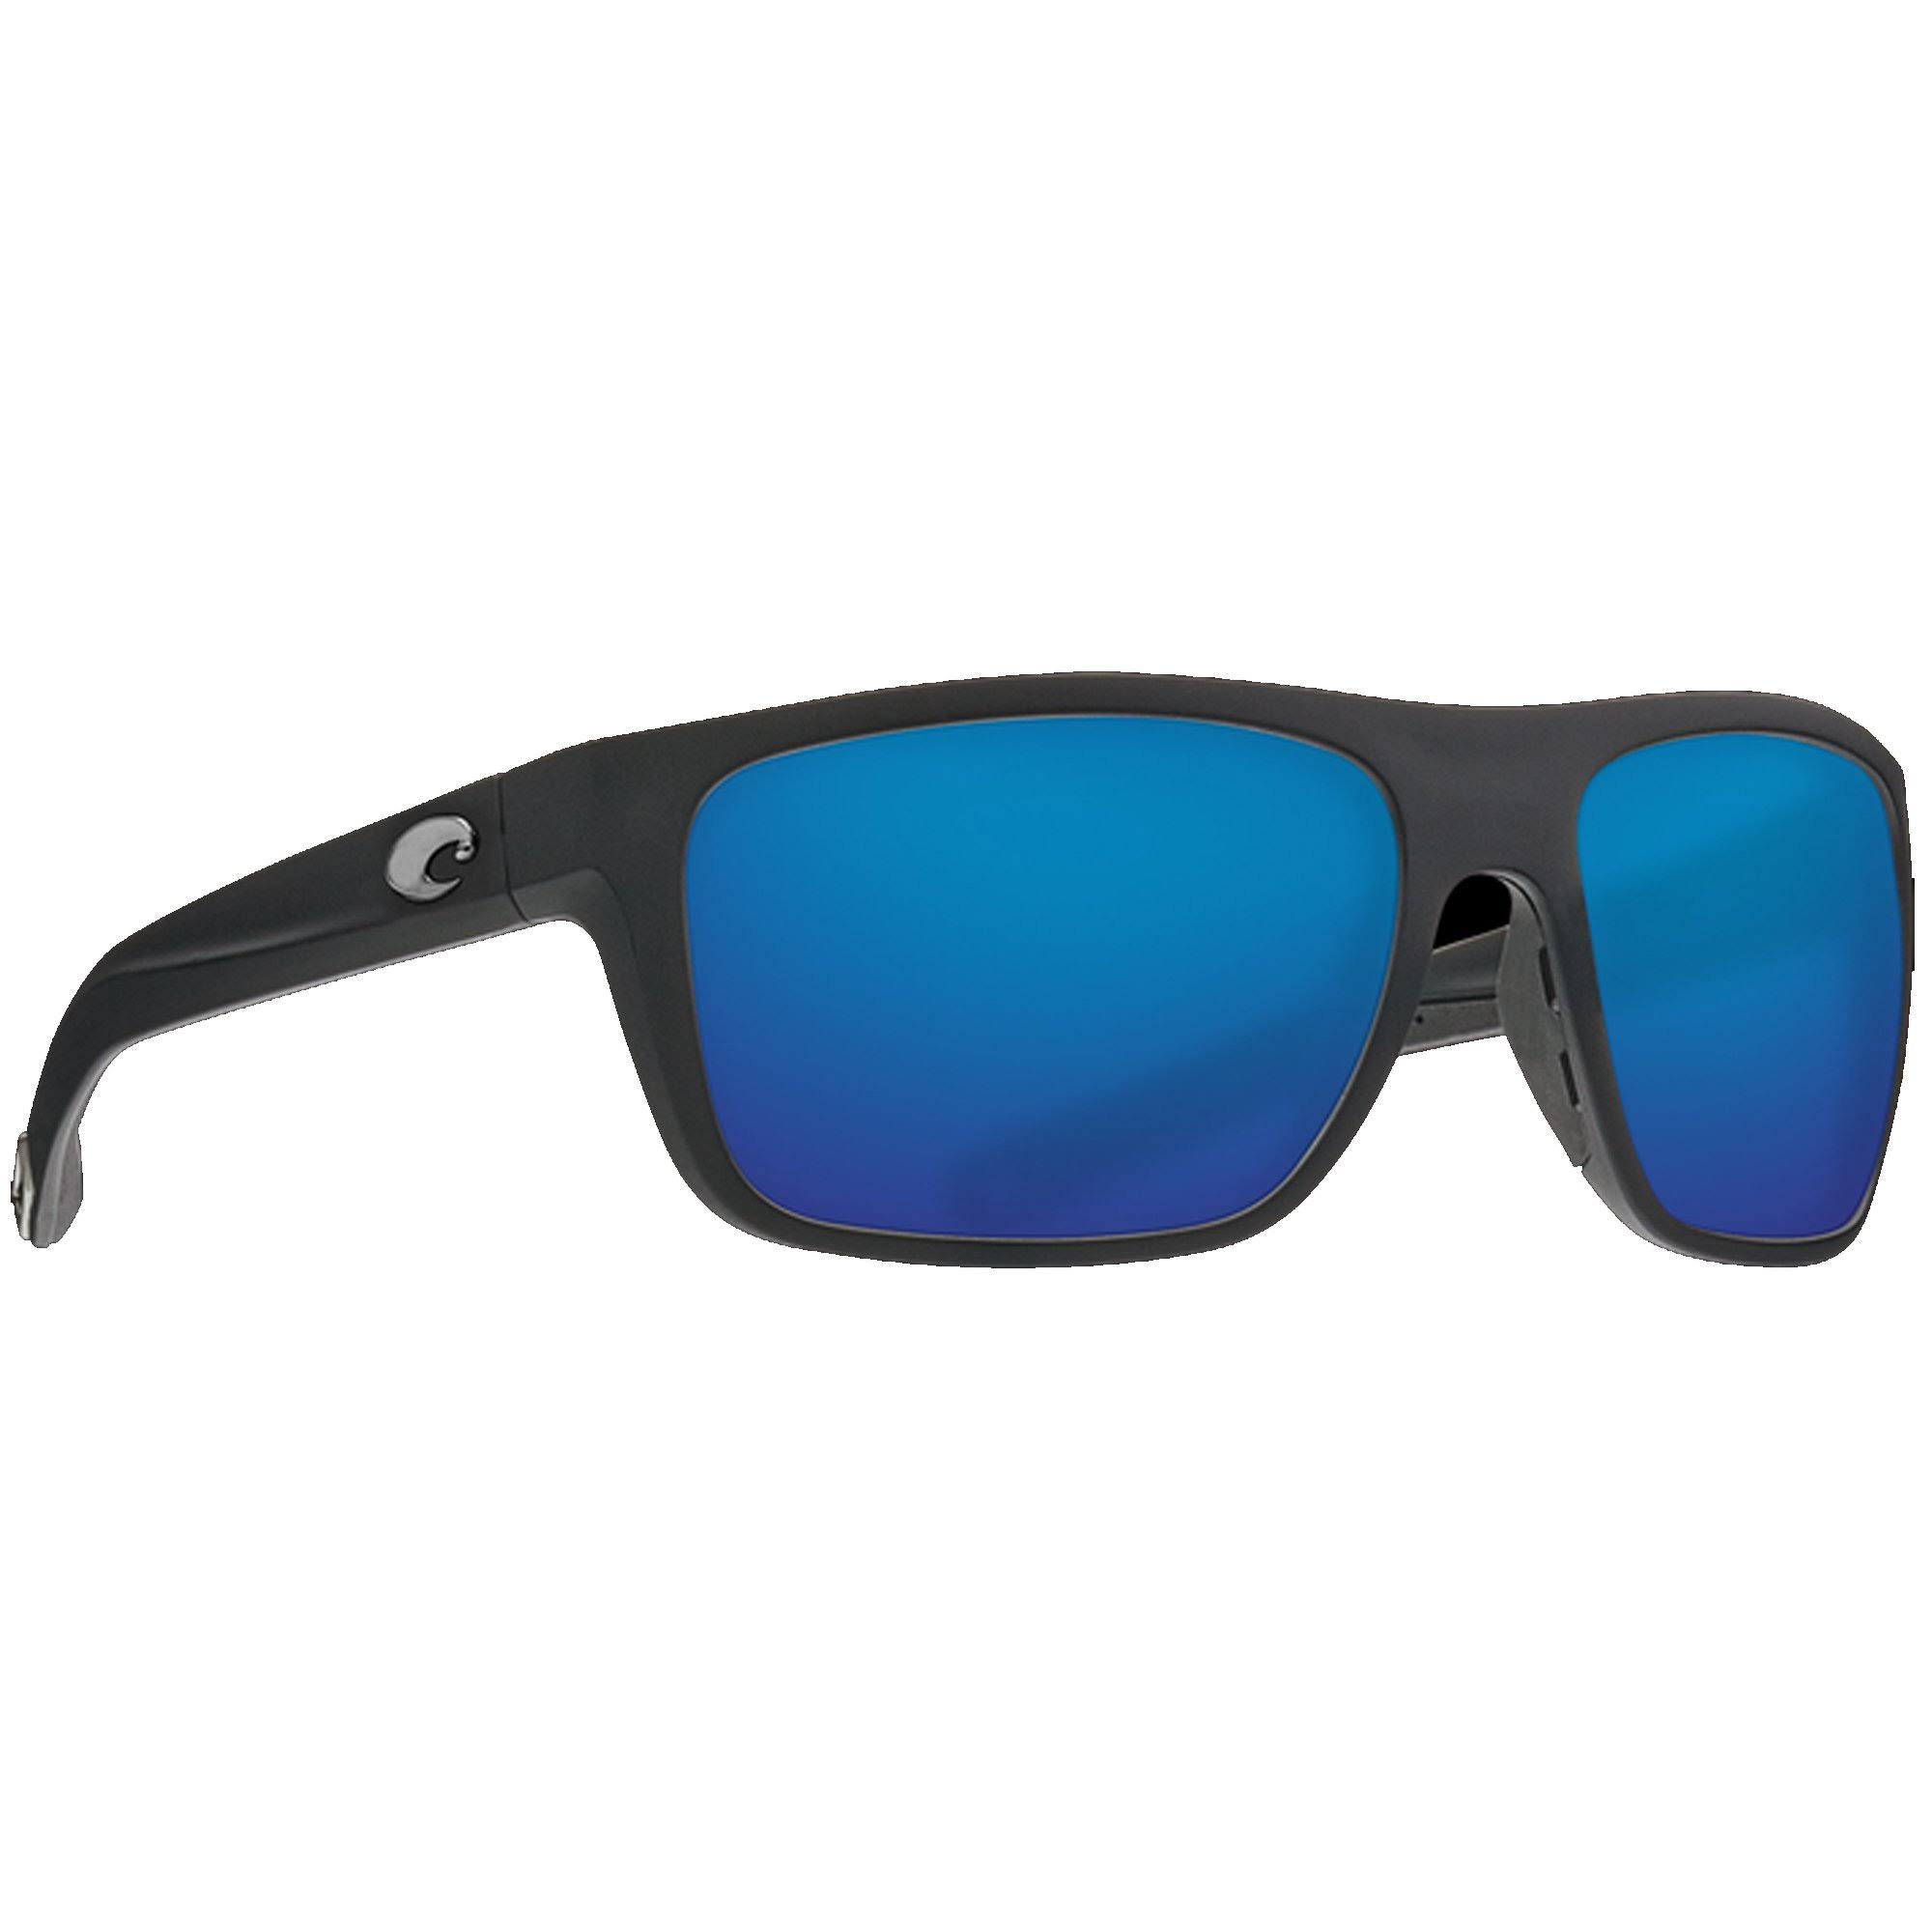 Costa Del Mar Broadbill Sunglasses - Matte Black/Blue Mirror 580G